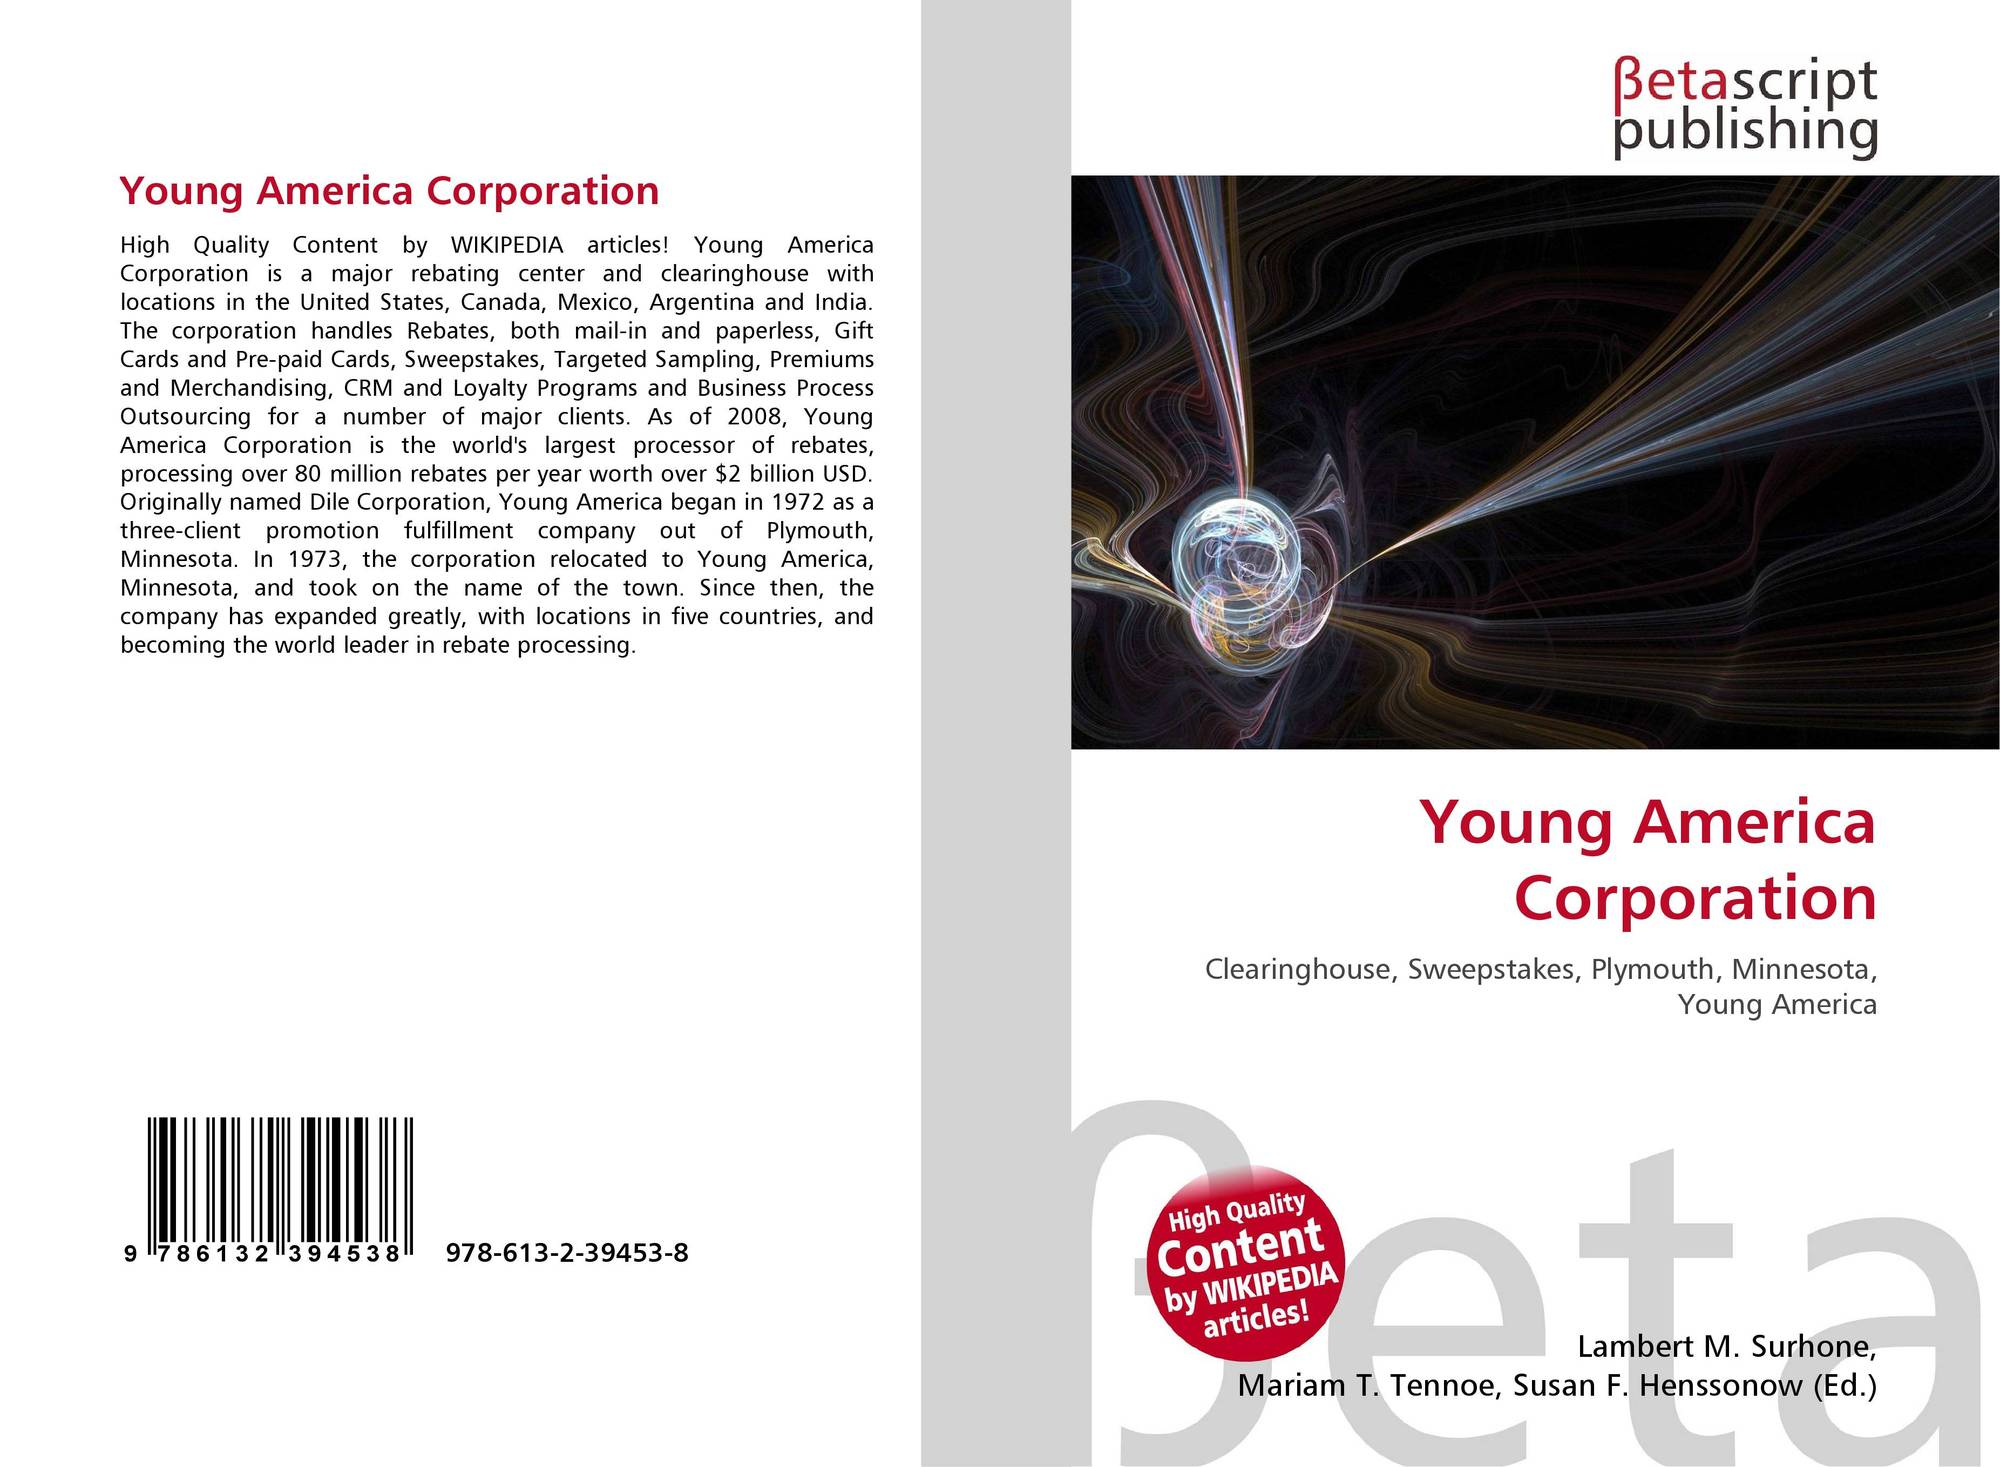 Young America Corporation, 978-613-2-39453-8, 6132394532 ,9786132394538